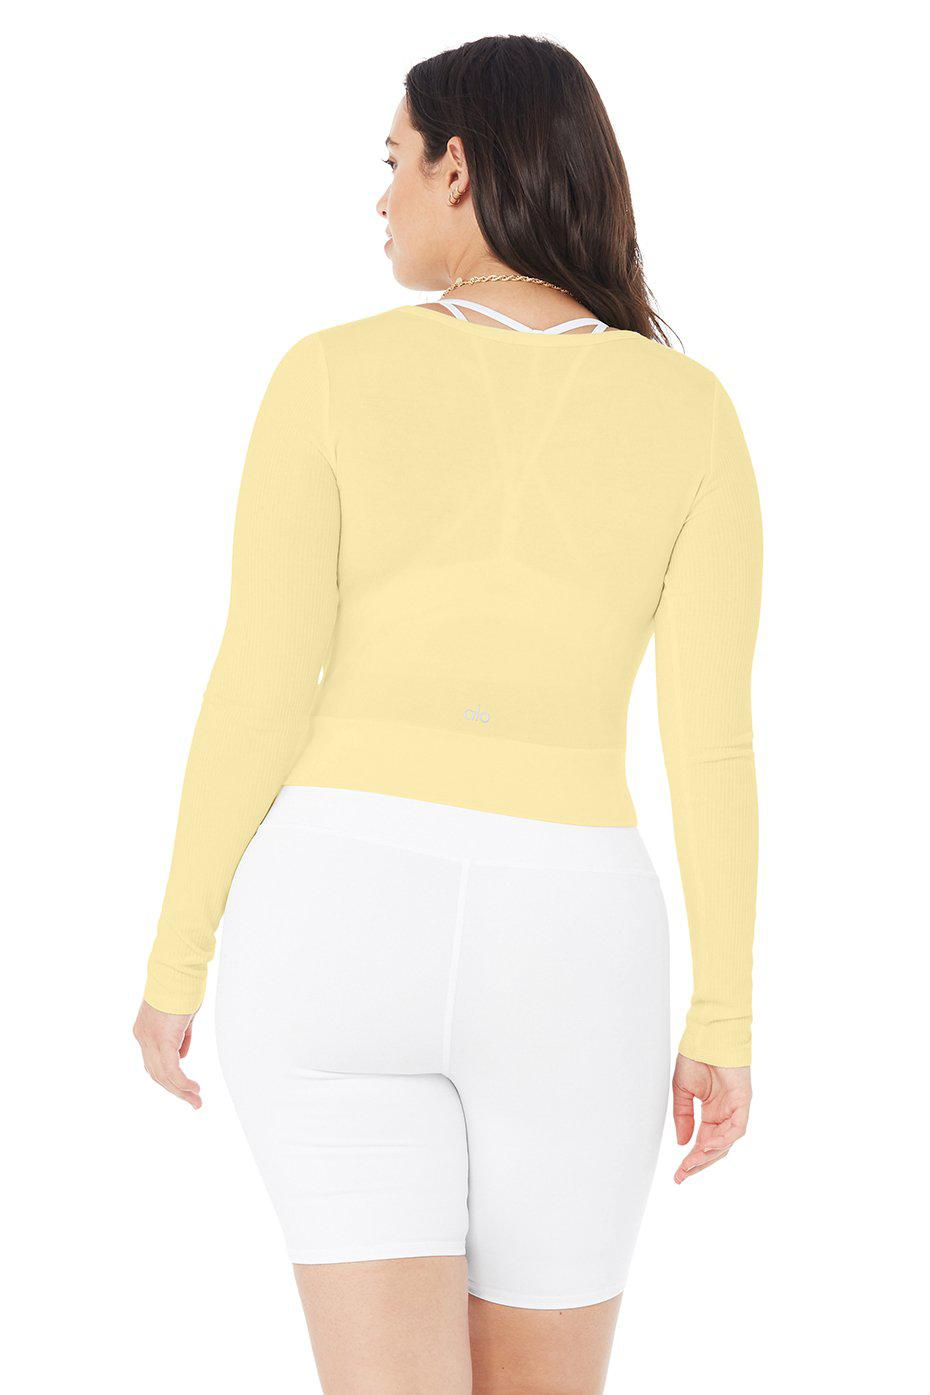 COVER LONG SLEEVE TOP 5